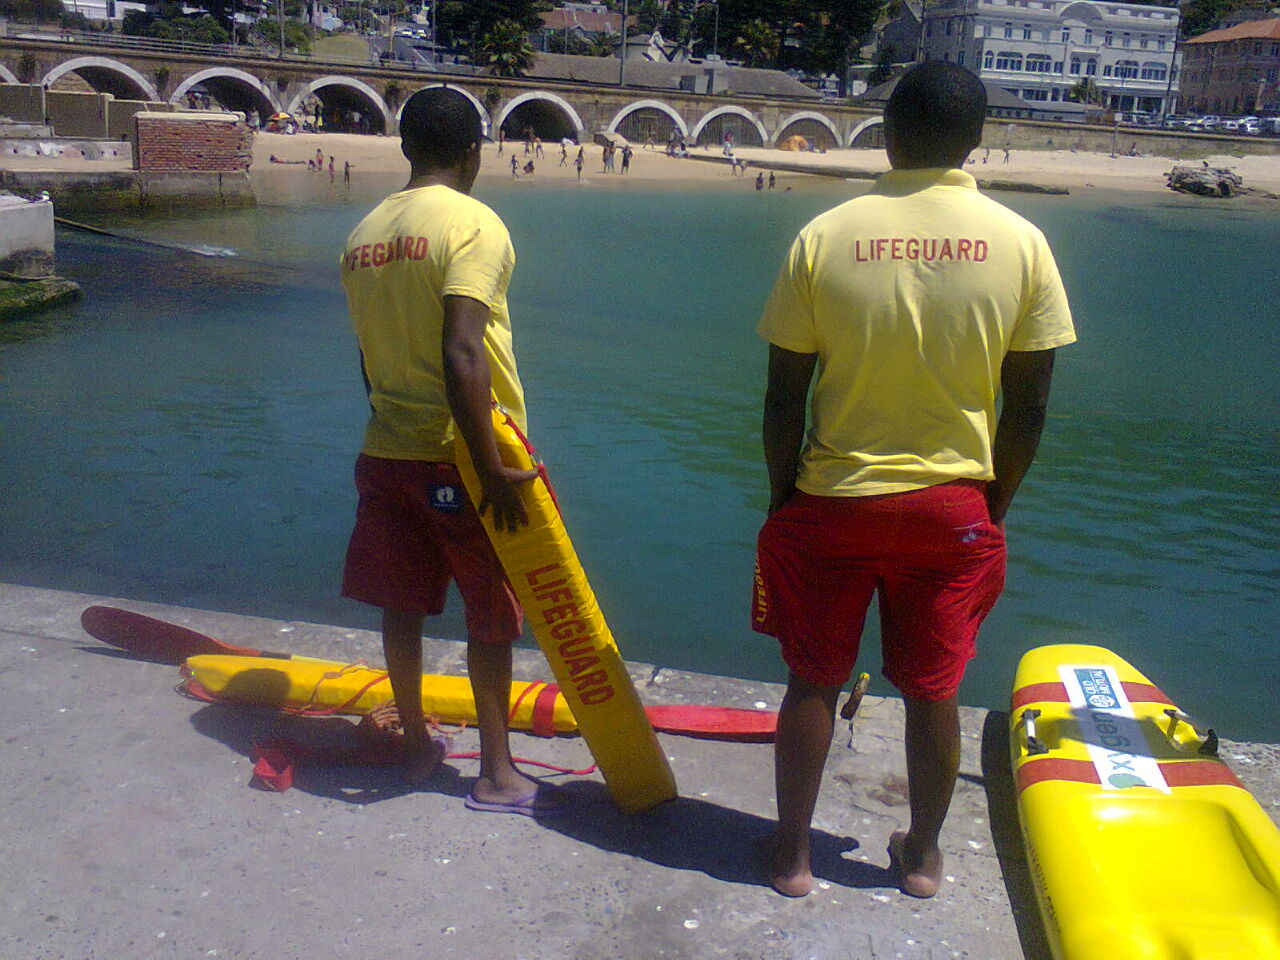 Lifeguards were on duty at Kalk Bay beach over the peak holiday period where thousands of families enjoyed the calm, warm waters. (c) SharkSpotters